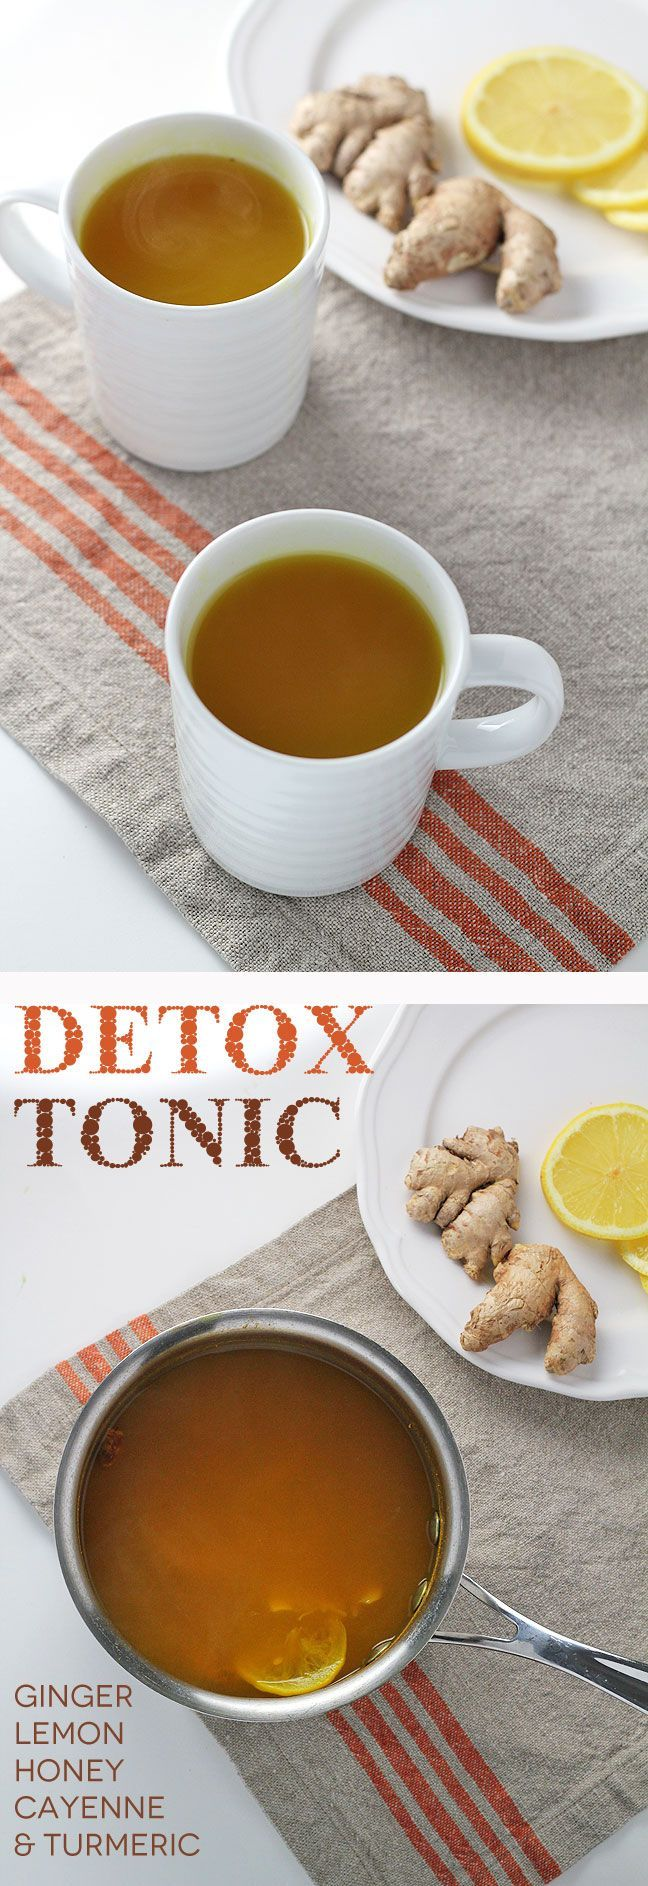 Detox Tonic - 5 powerful ingredients to support detoxification, boost immunity, and help with common allergy symptoms.